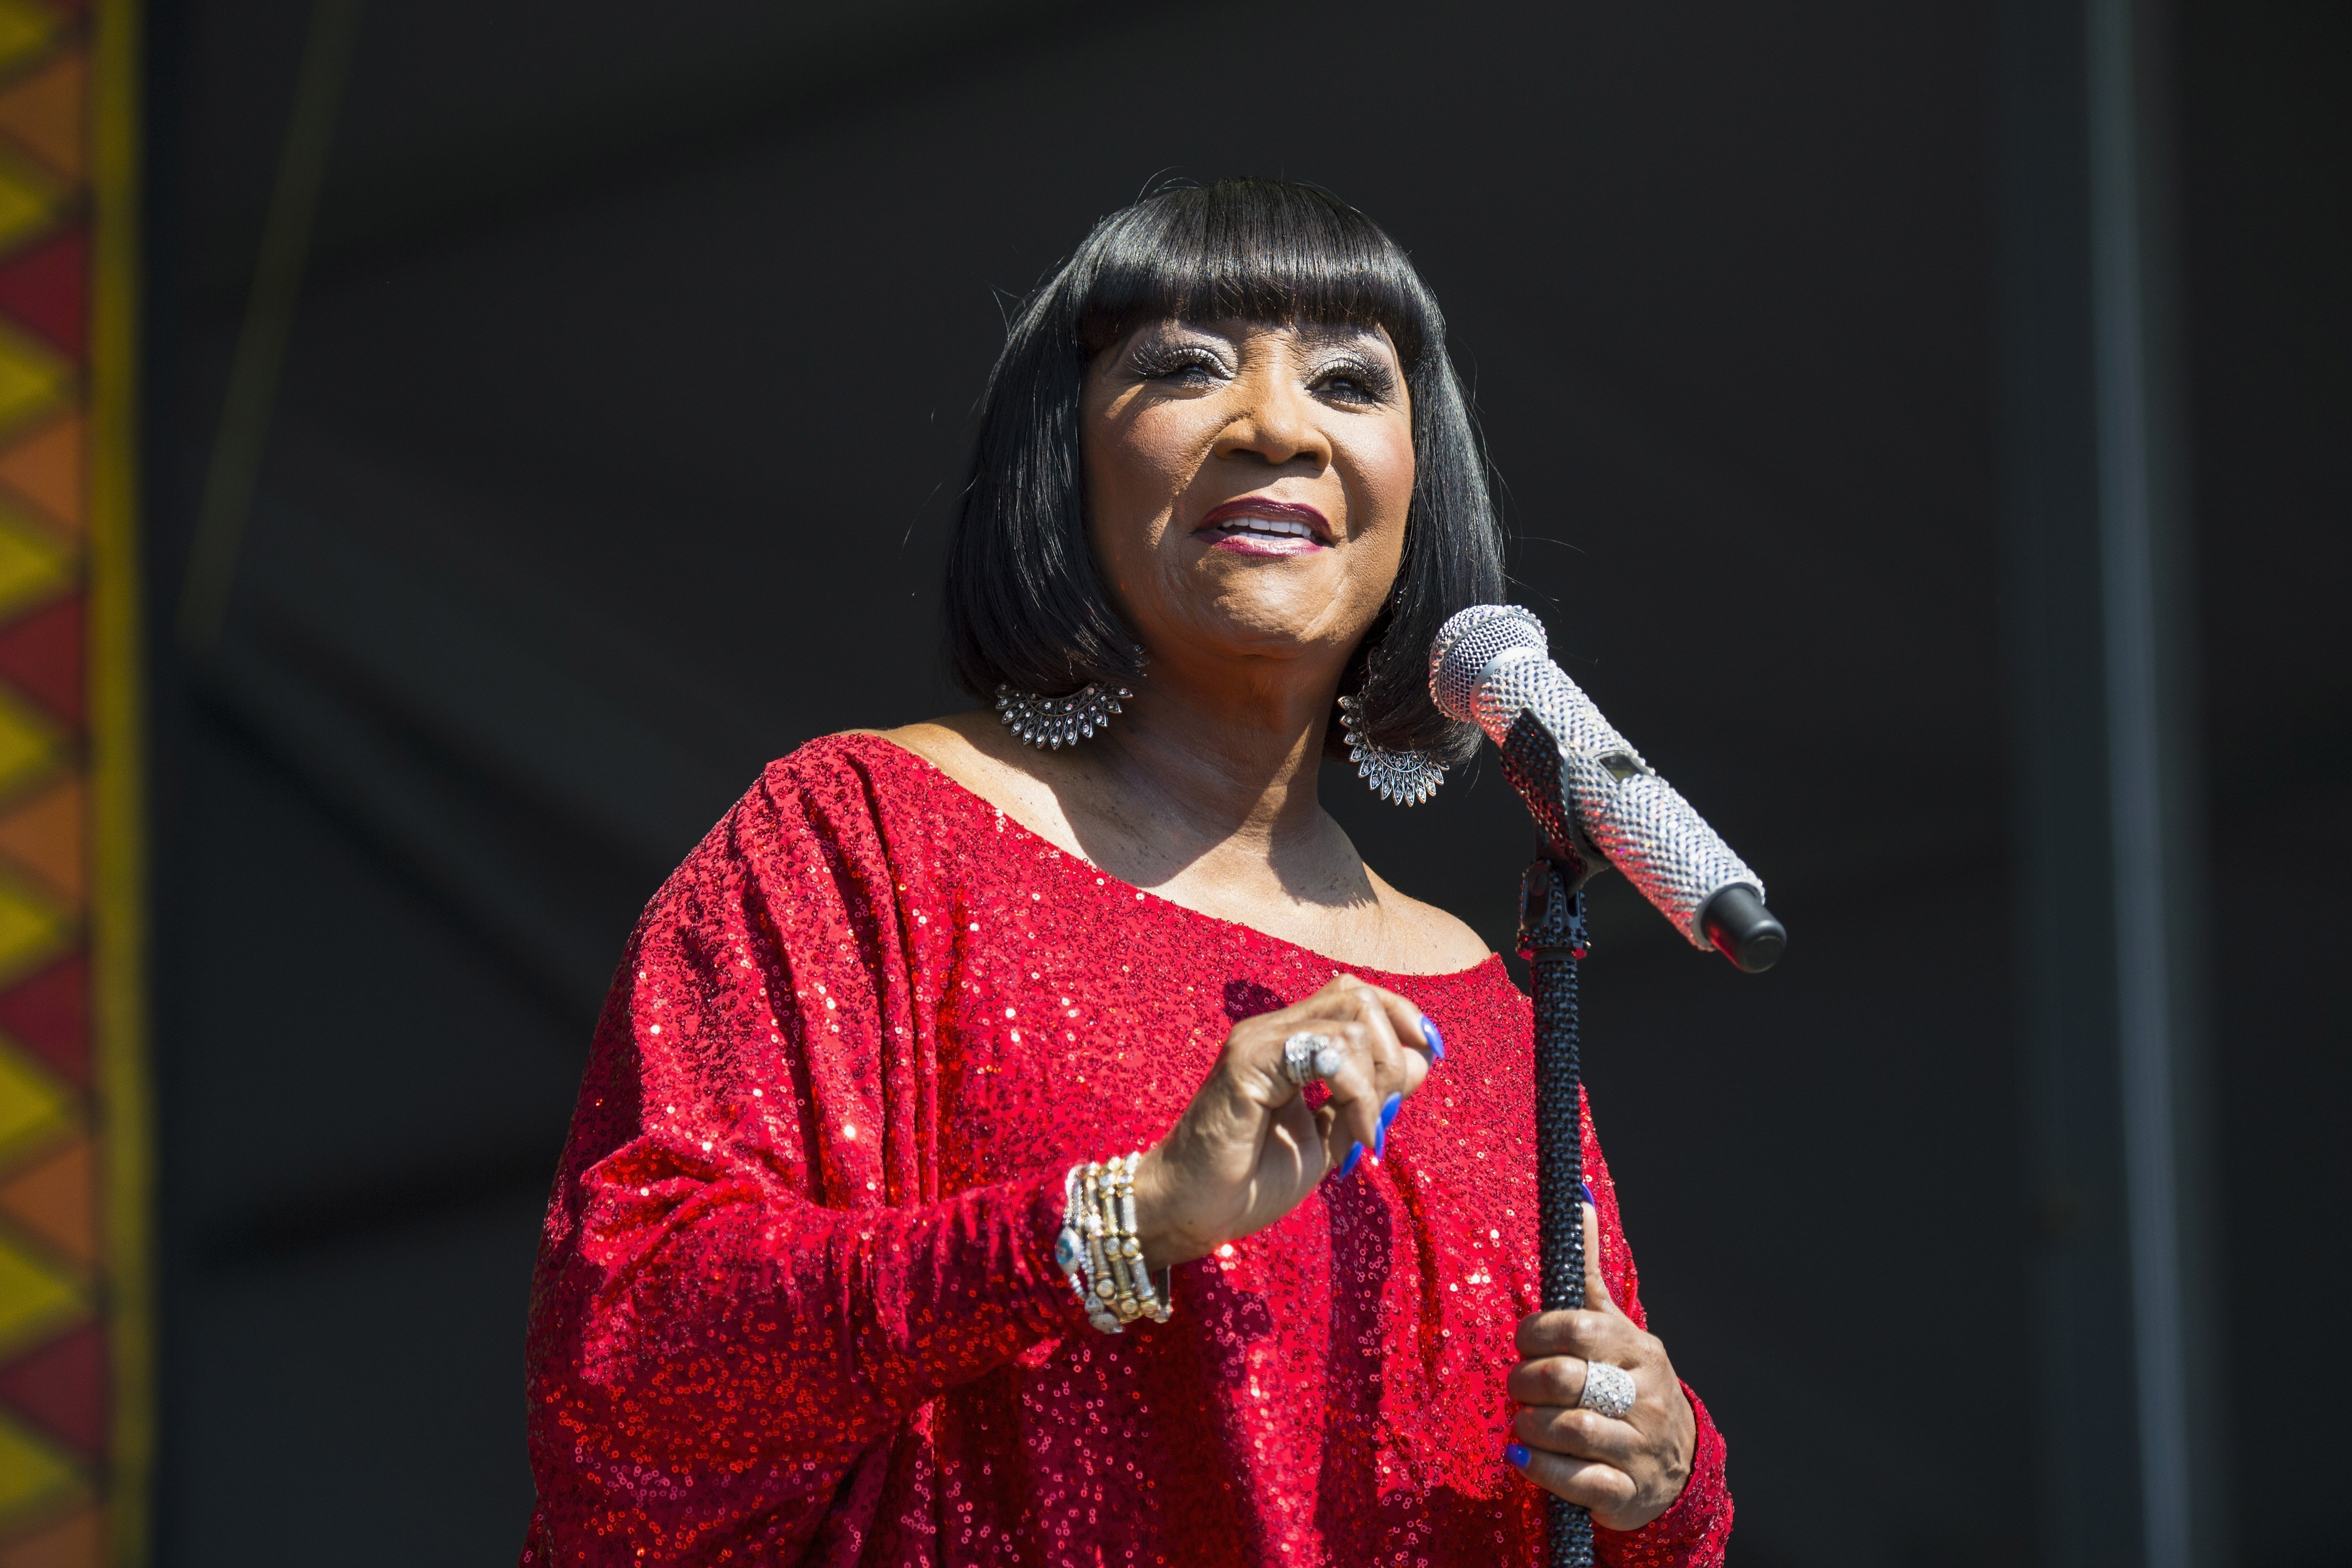 Patti LaBelle performing at the 2017 New Orleans Jazz & Heritage Festival. | Photo: Getty Images